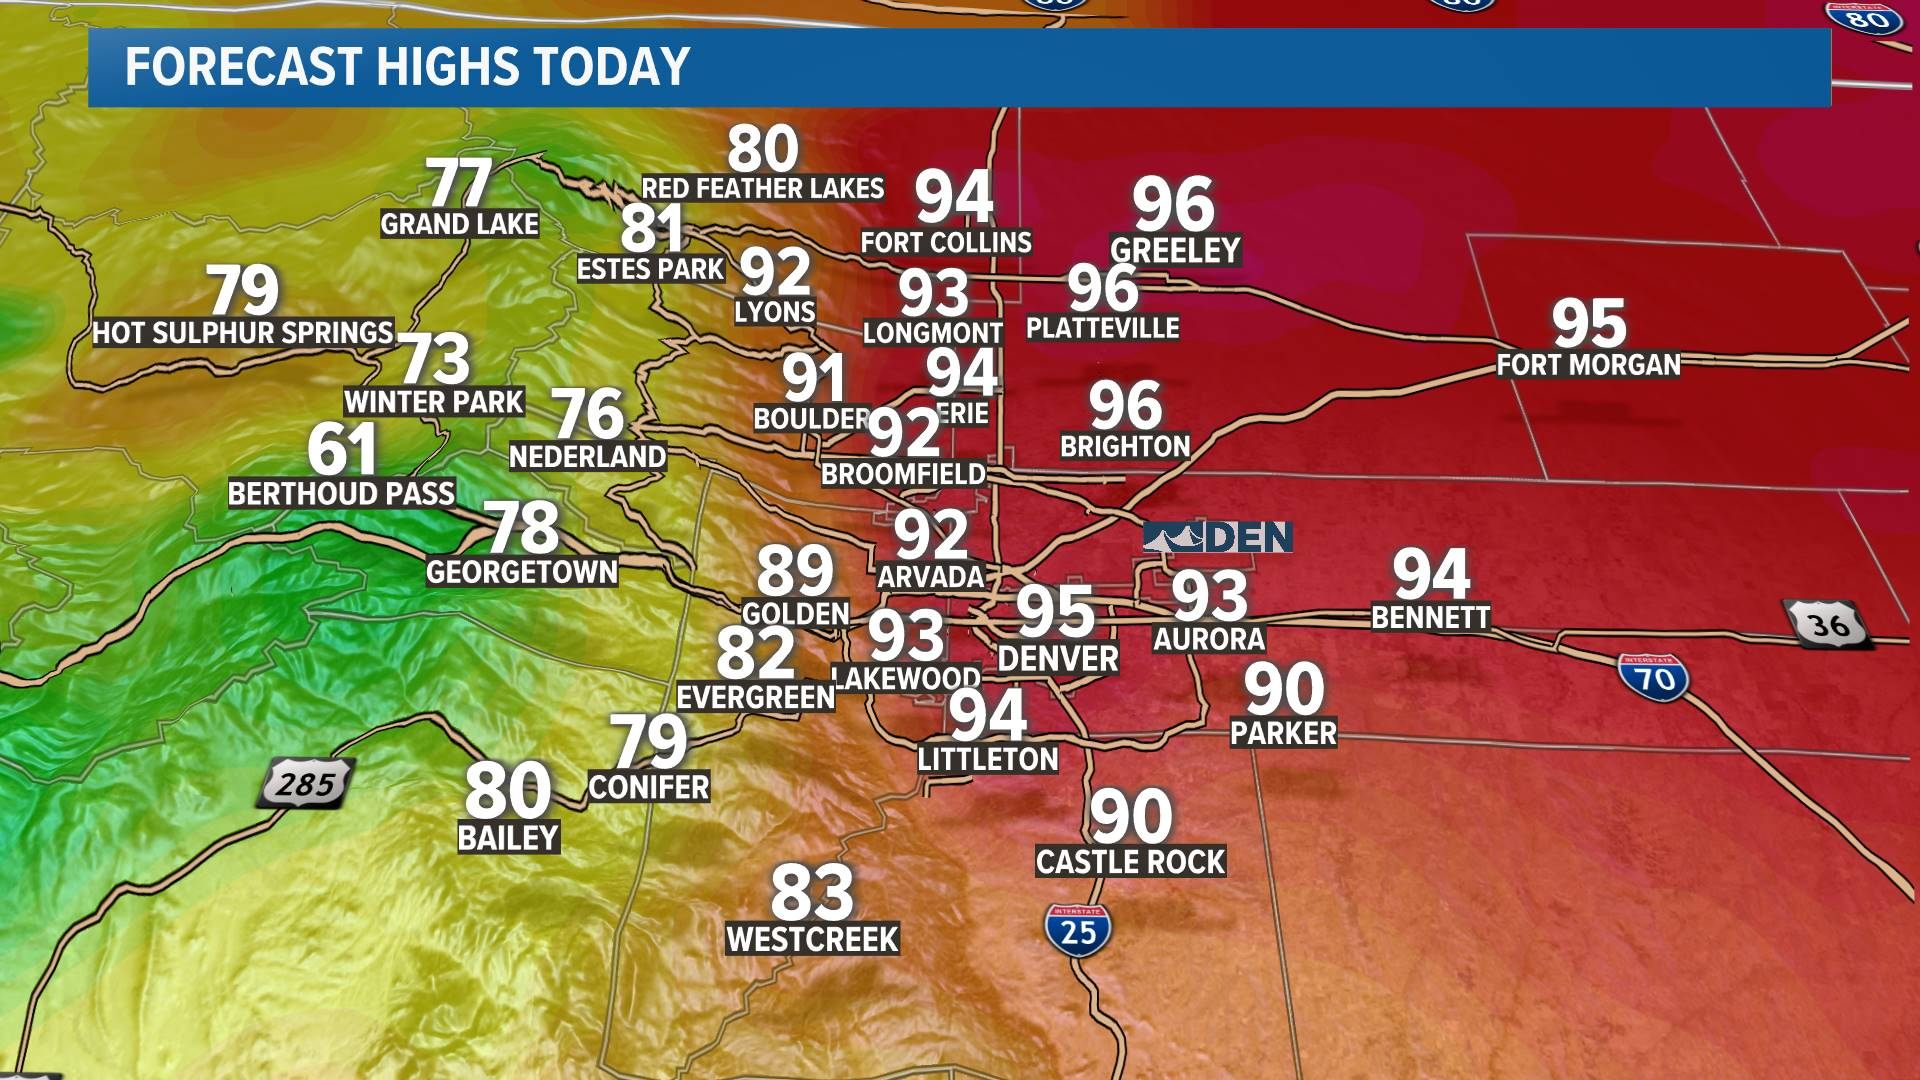 Local Highs Today